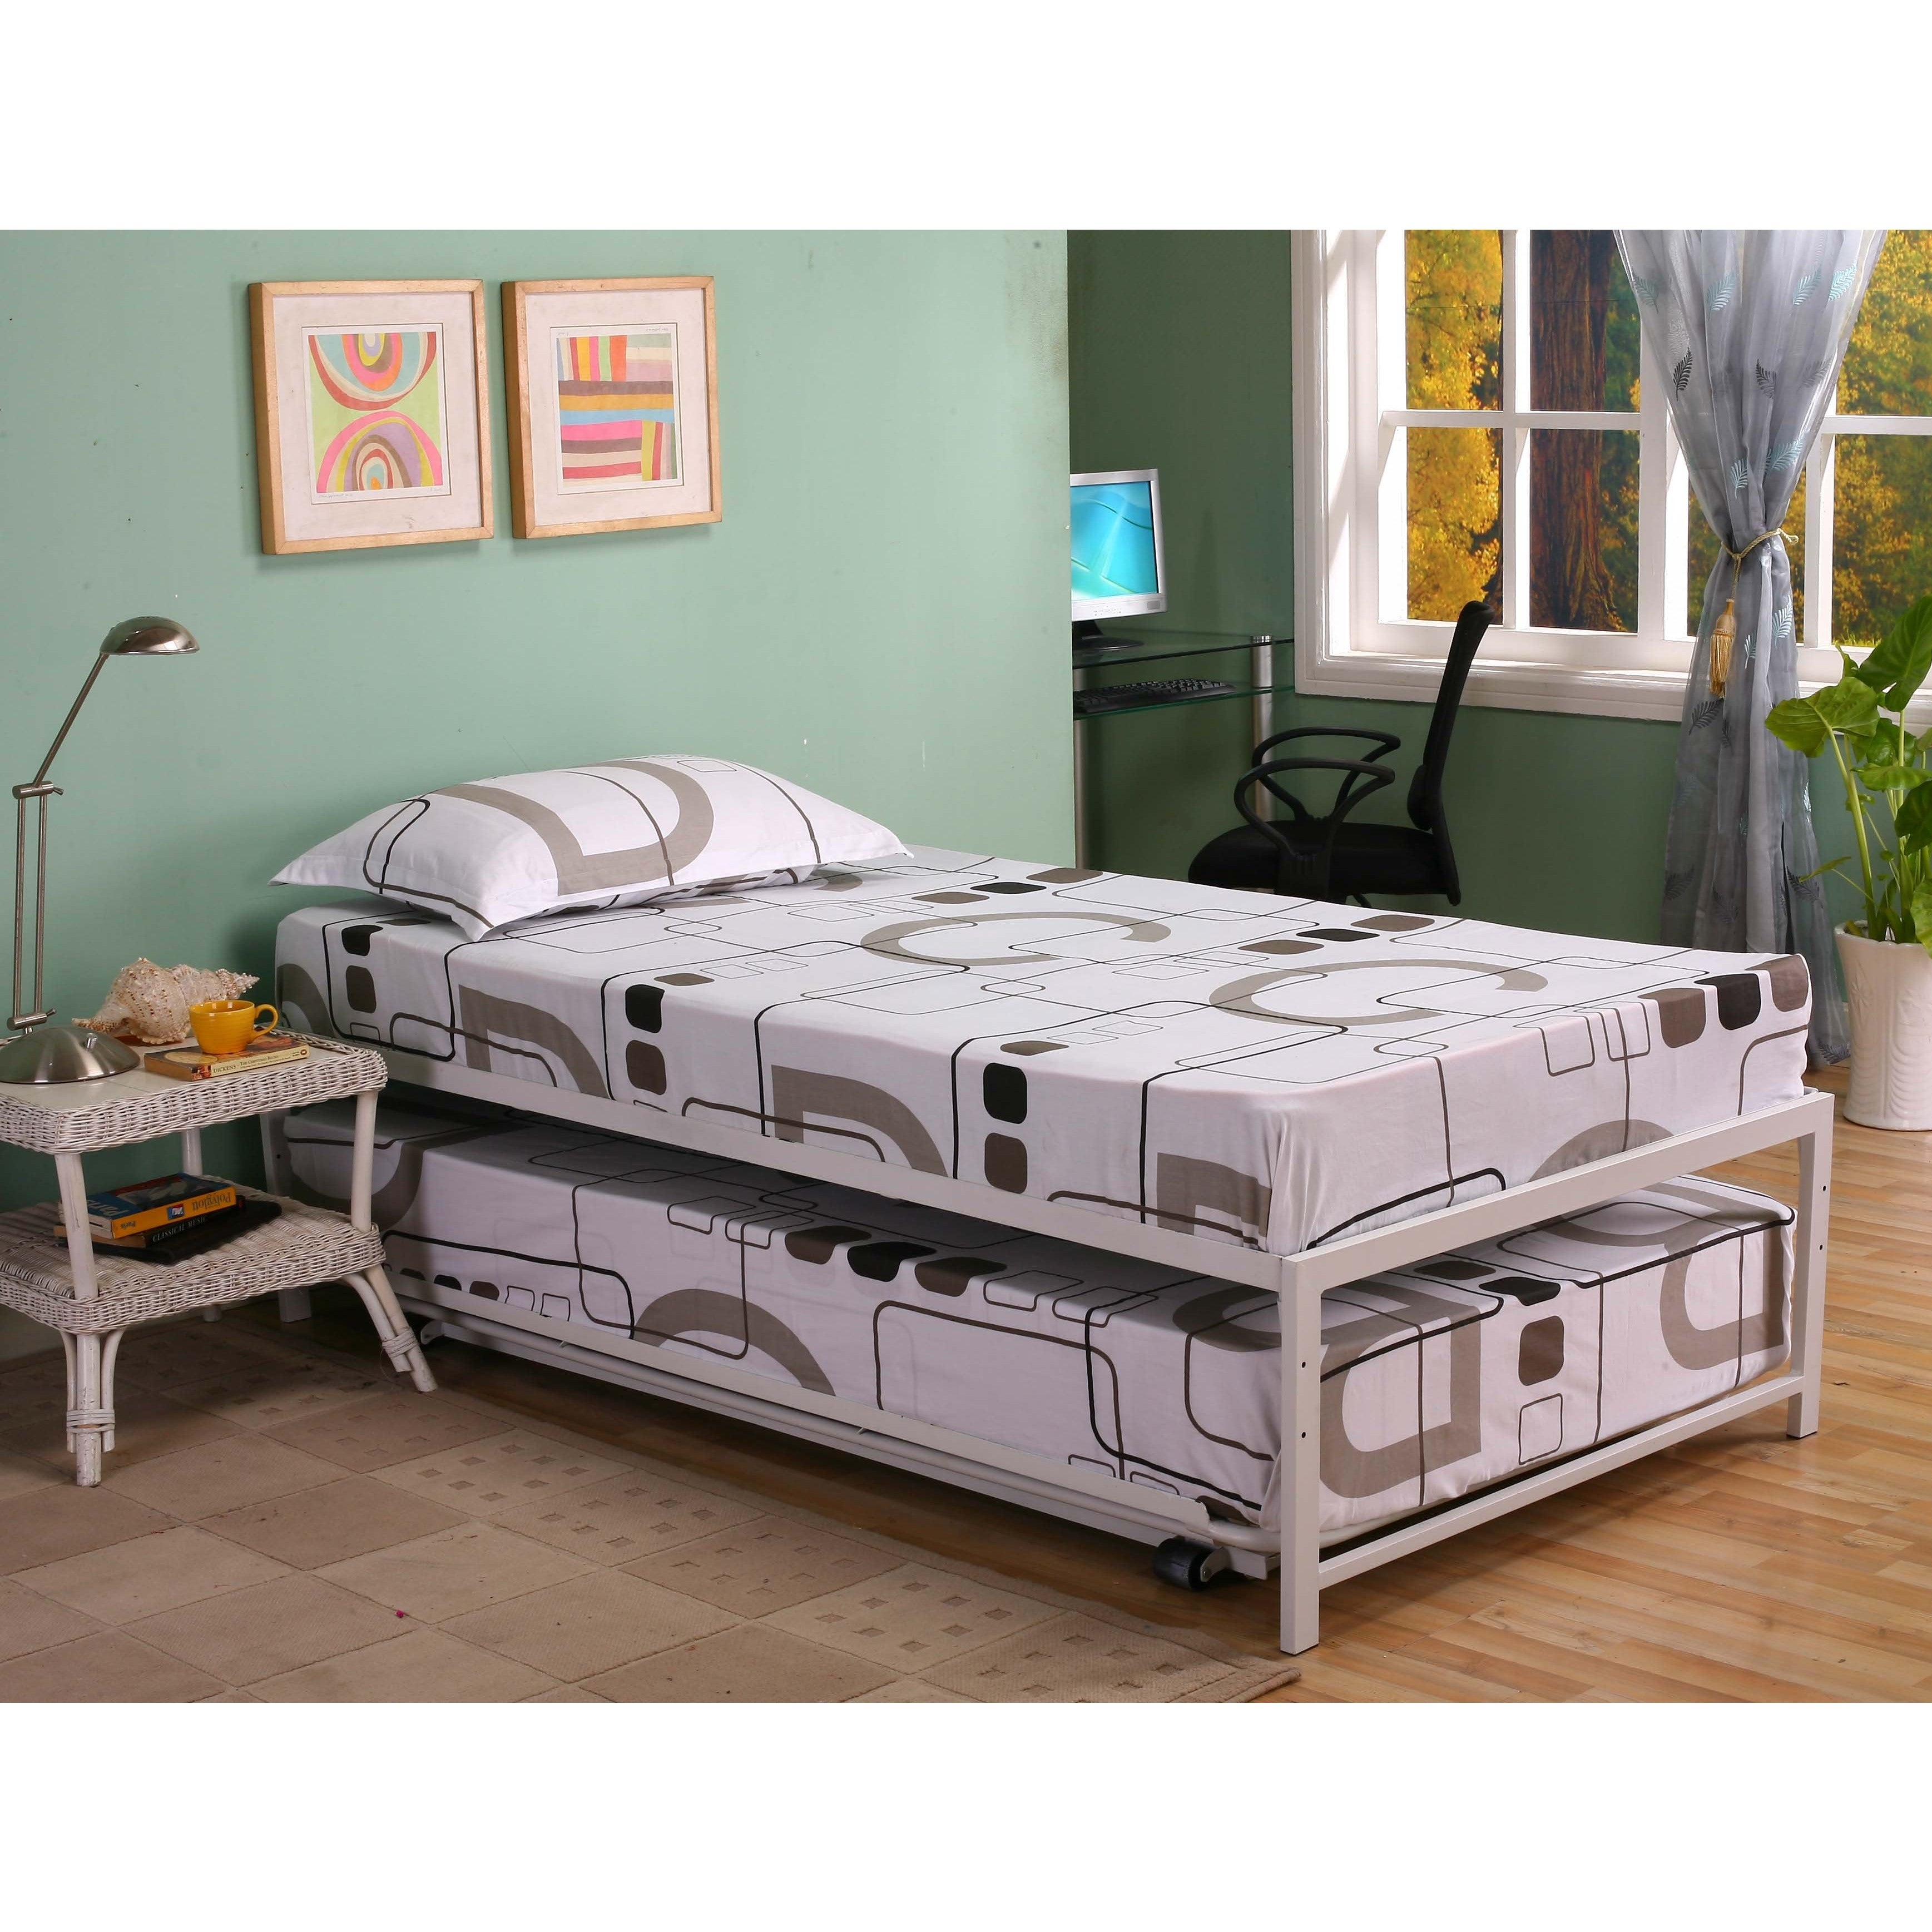 Picture of: K B Hi Riser Twin Bed With Pop Up Trundle Overstock 9659305